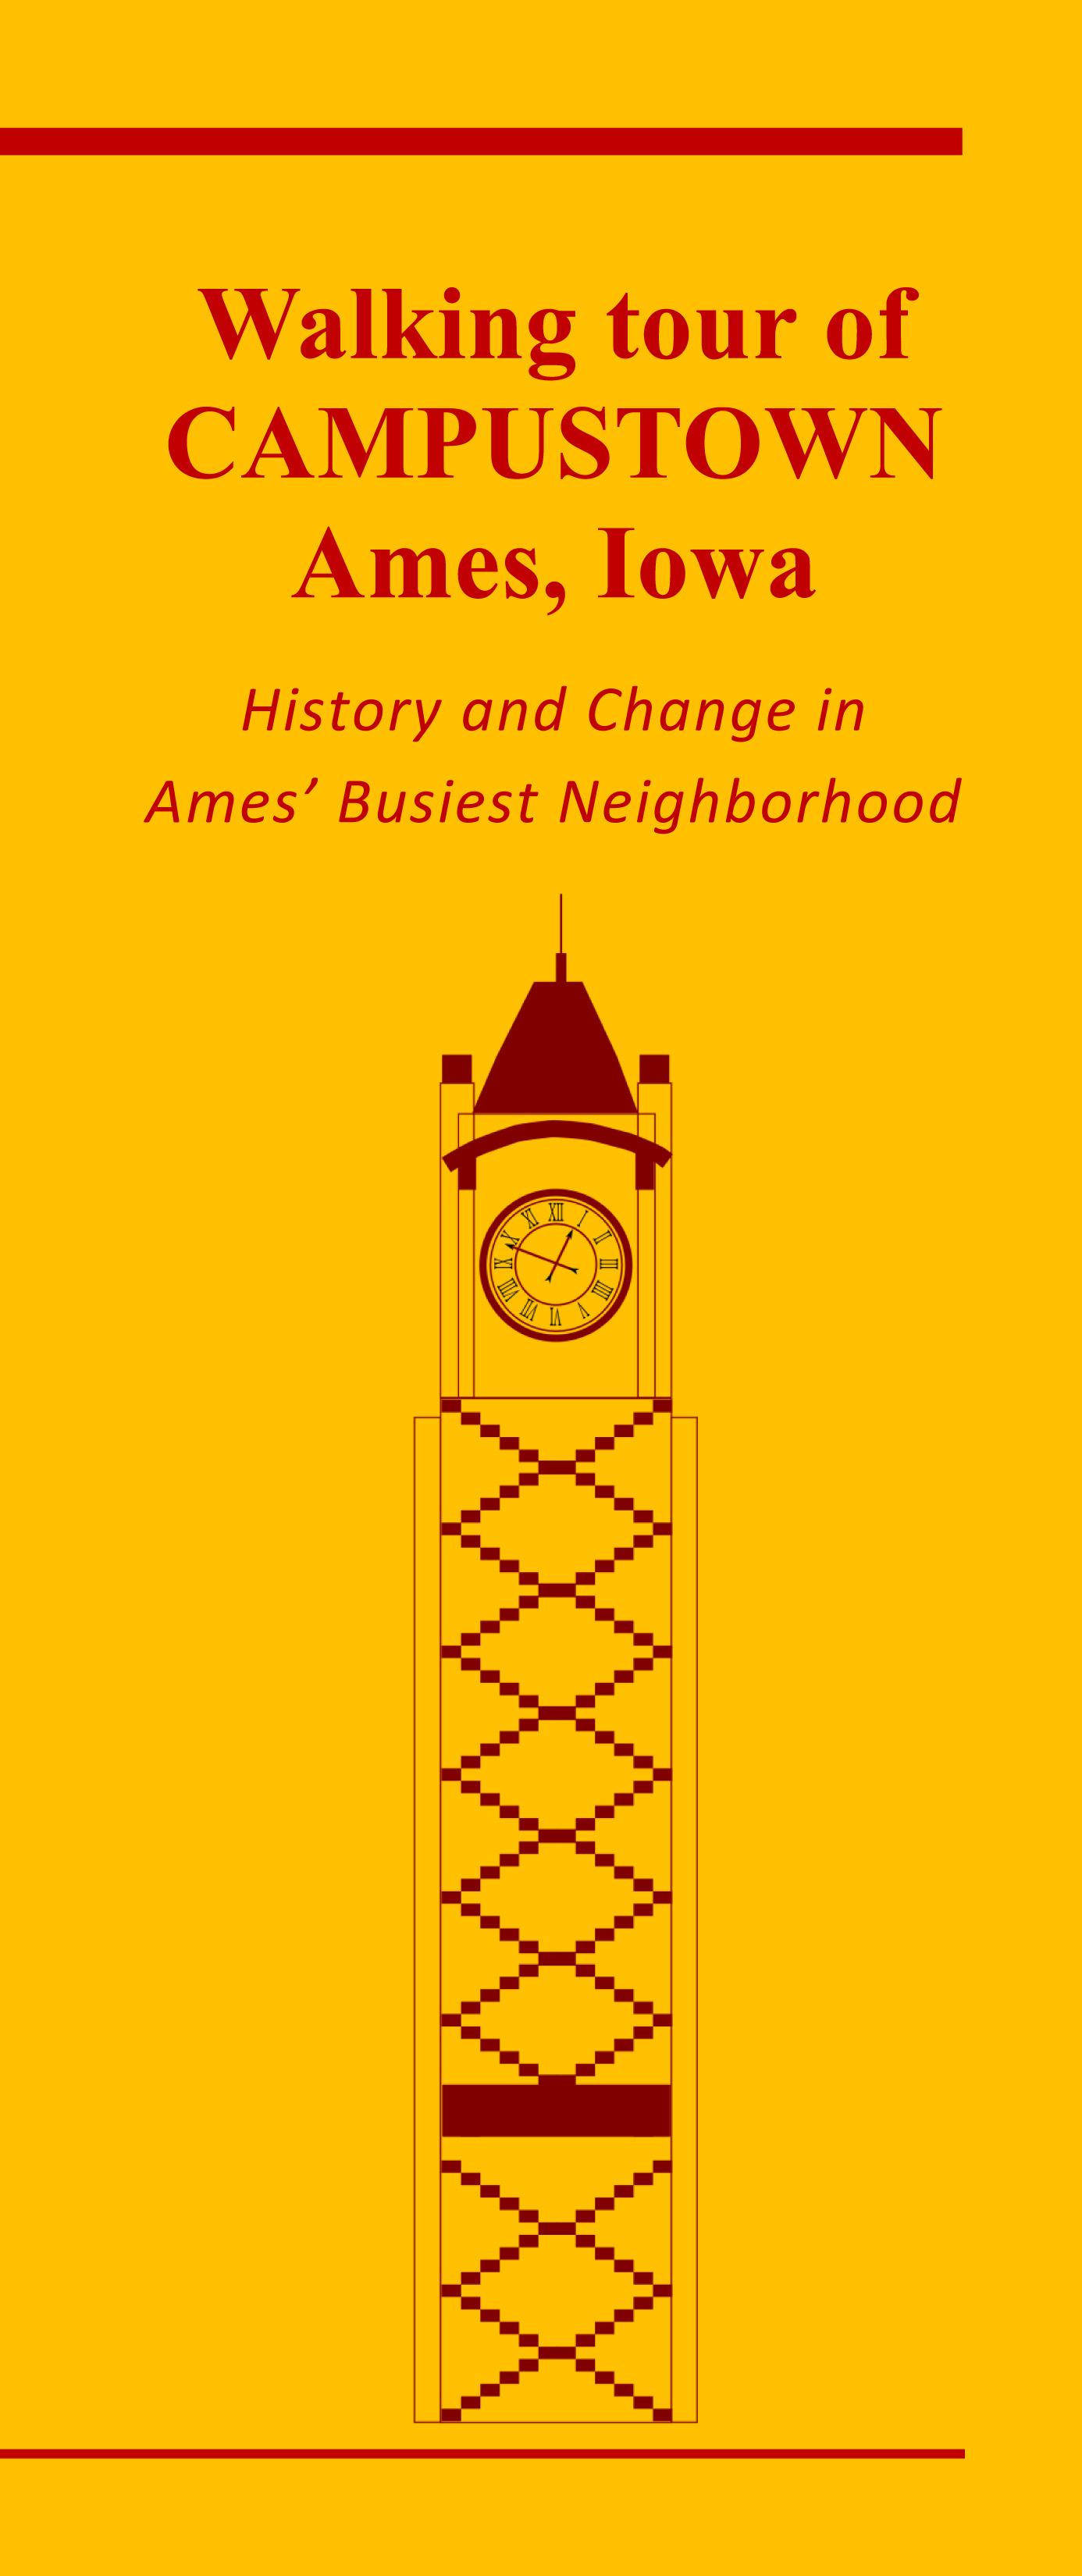 Campustown Tour cover.jpg